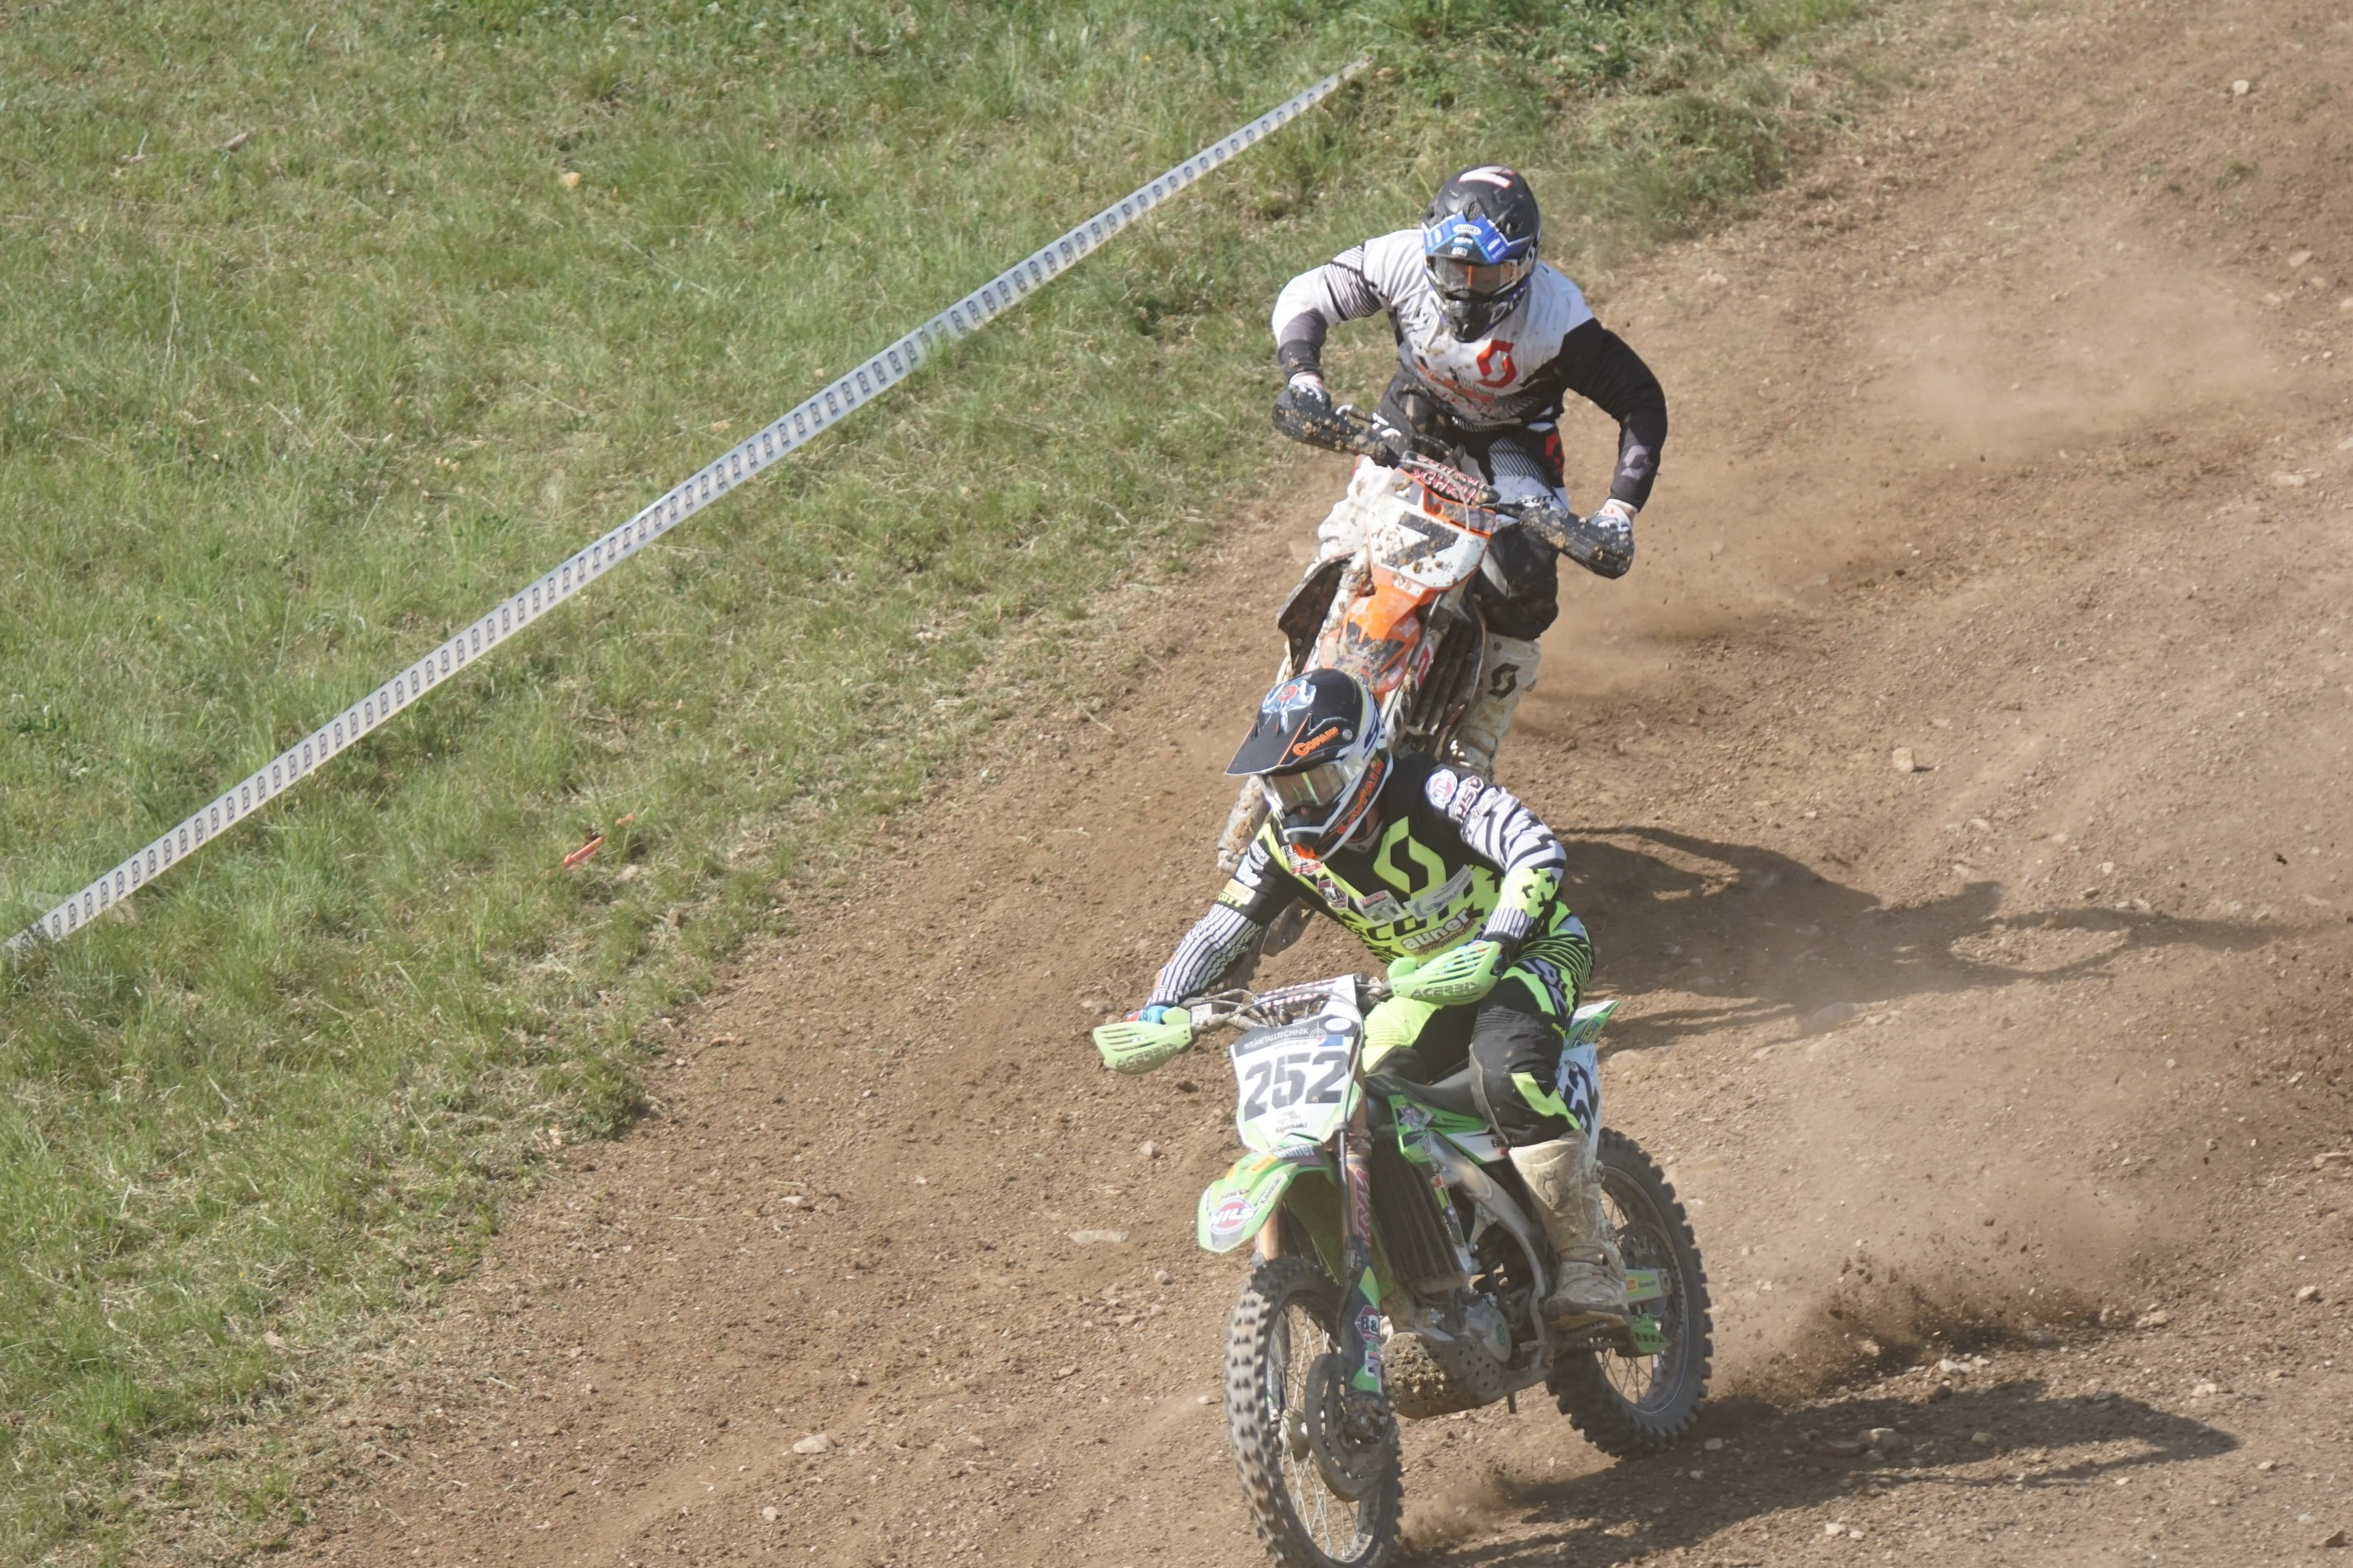 DSC 819_Moto Cross Sittendorf Teil1 am 29.04.2018